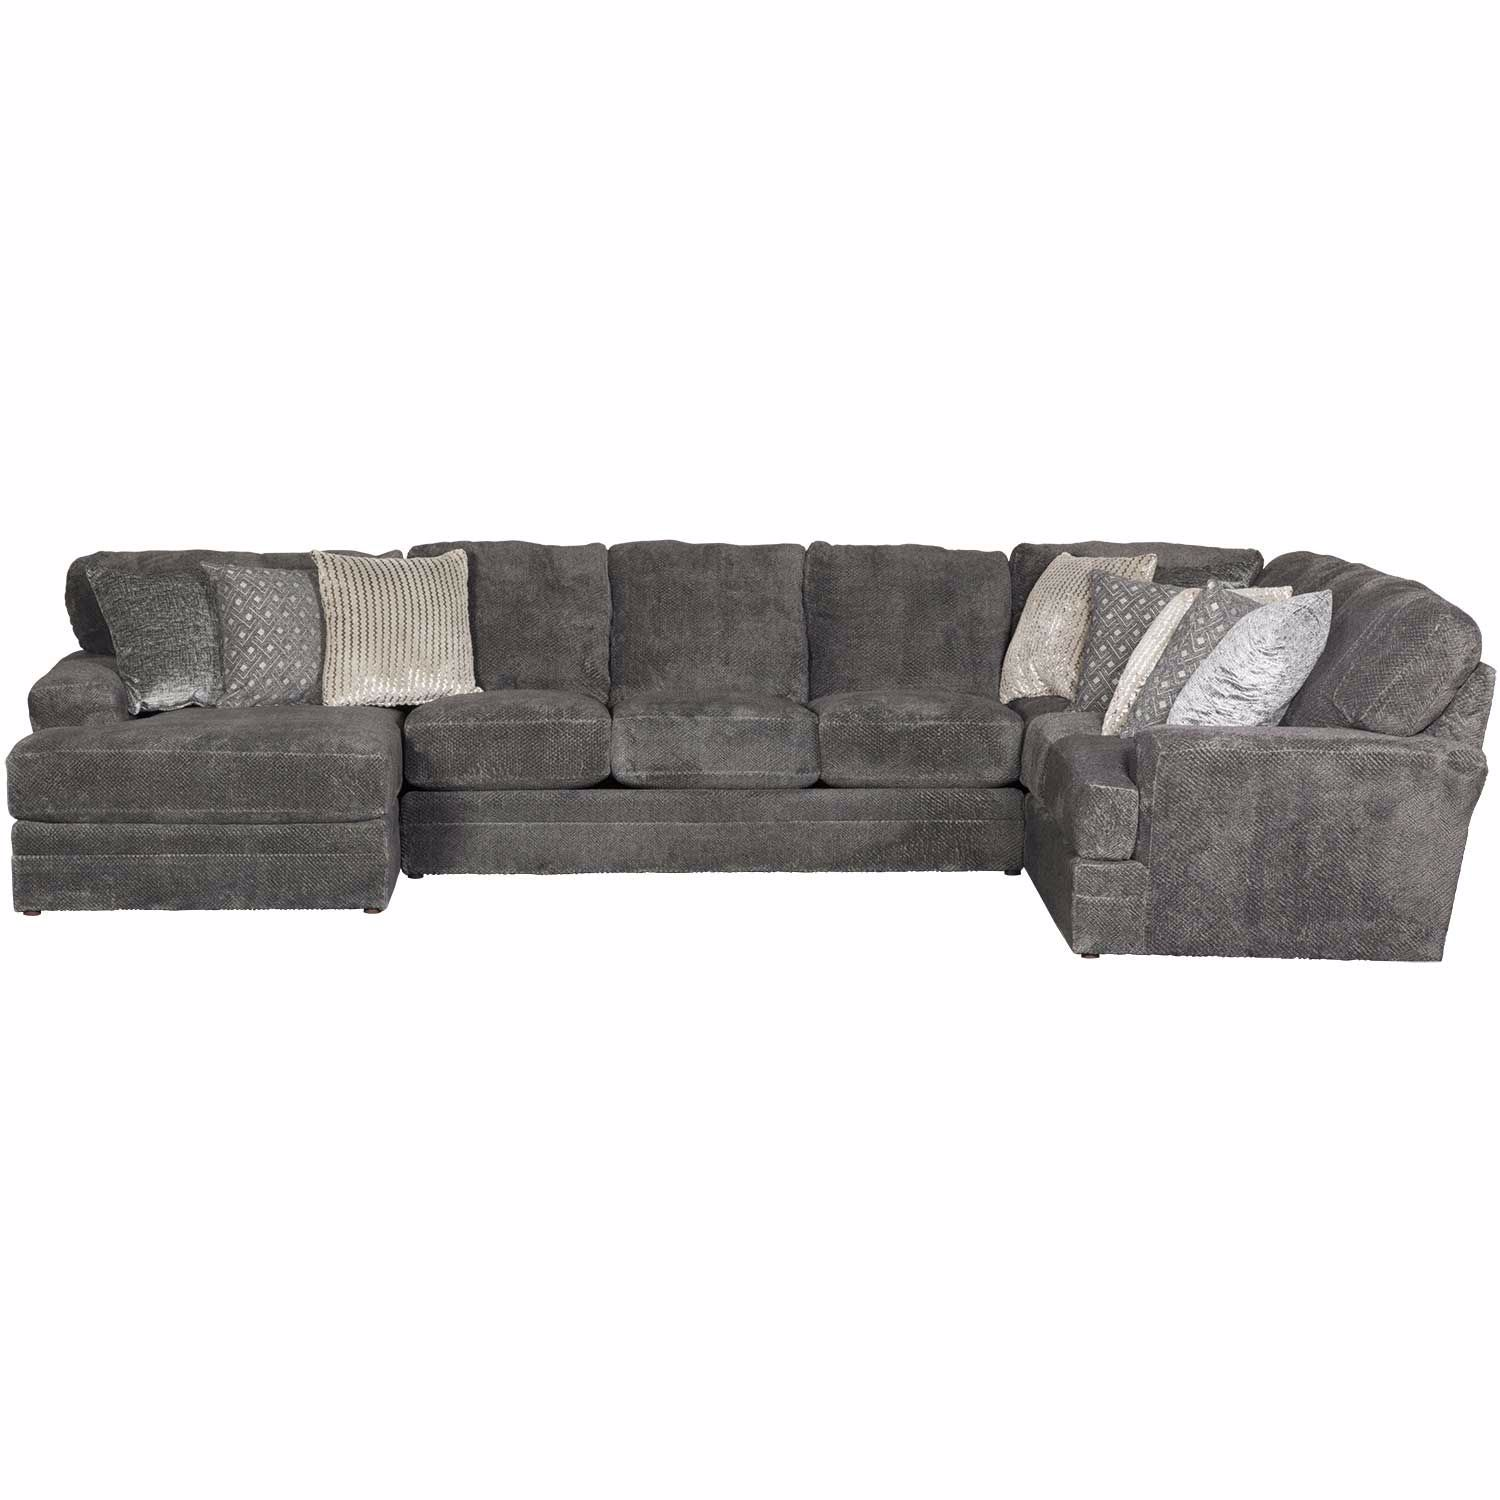 Picture of Mammoth 3 Piece Sectional with LAF Chaise